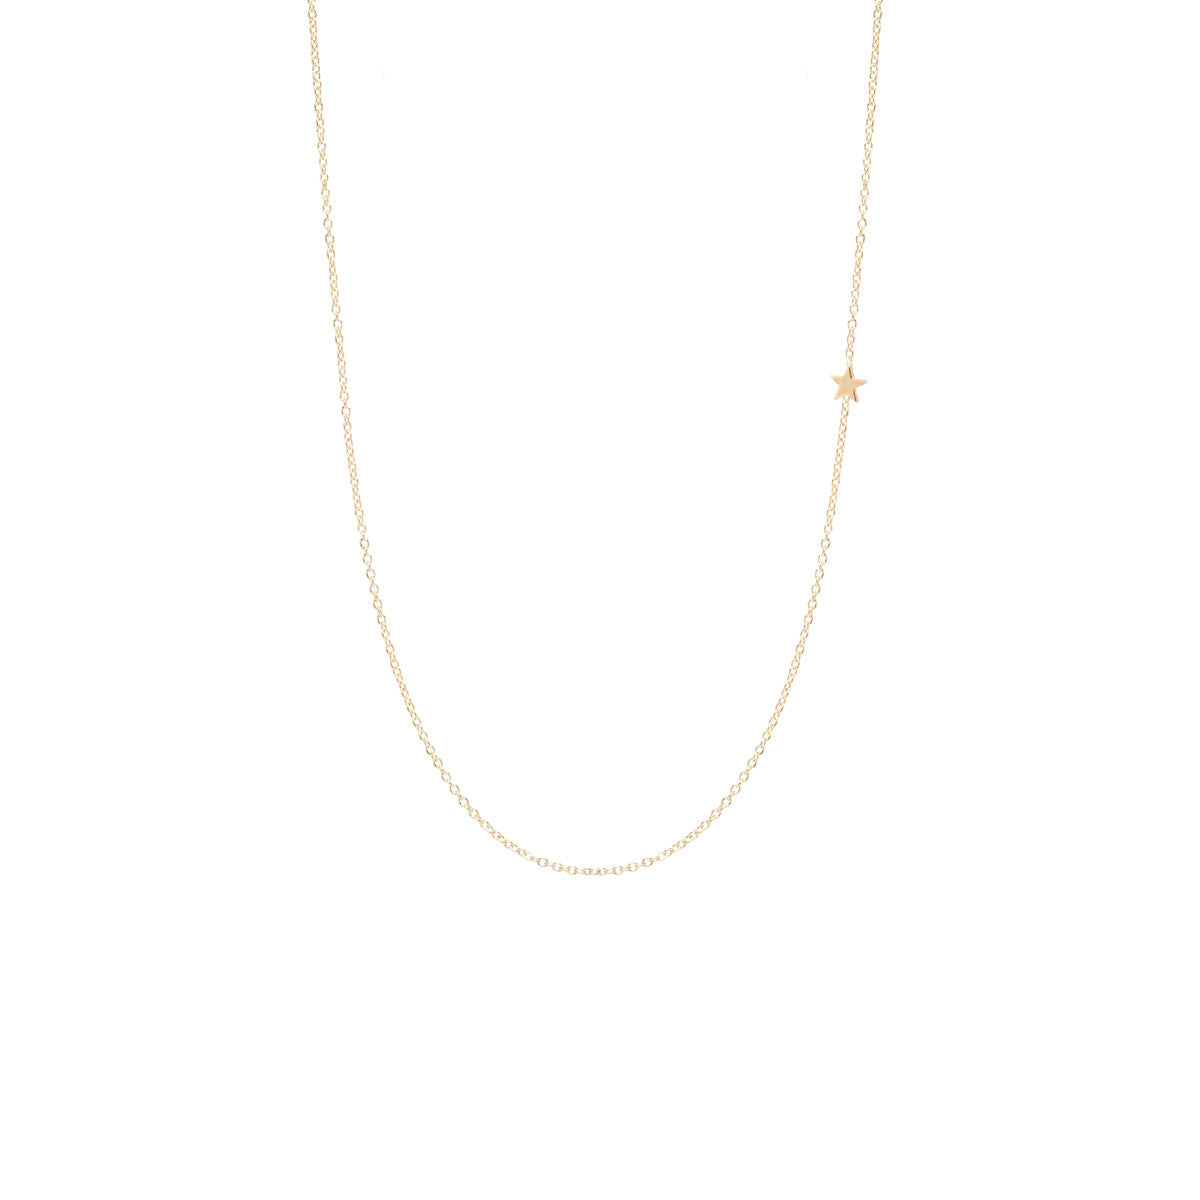 Zoë Chicco 14kt Yellow Gold Itty Bitty Off-Center Star Necklace